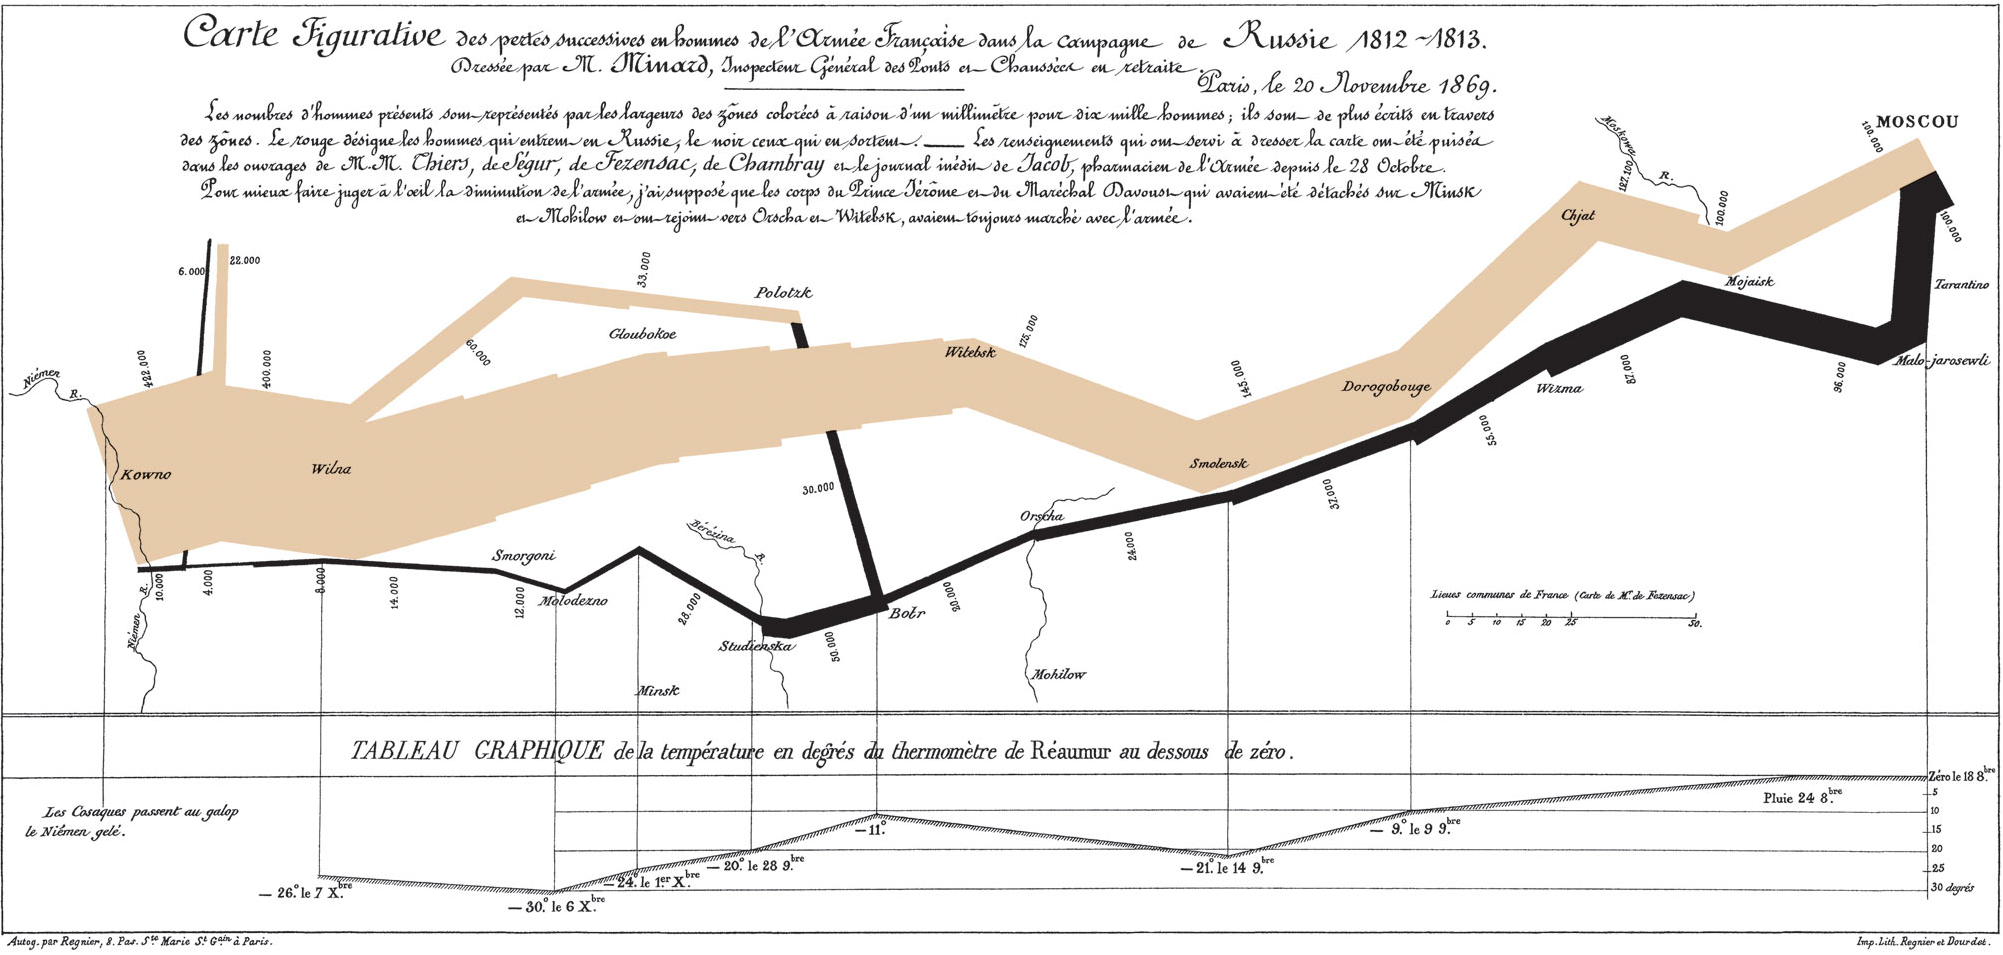 Infographic by Minard showing the French army's march, and then retreat, to & from Moscow, 1812-1813